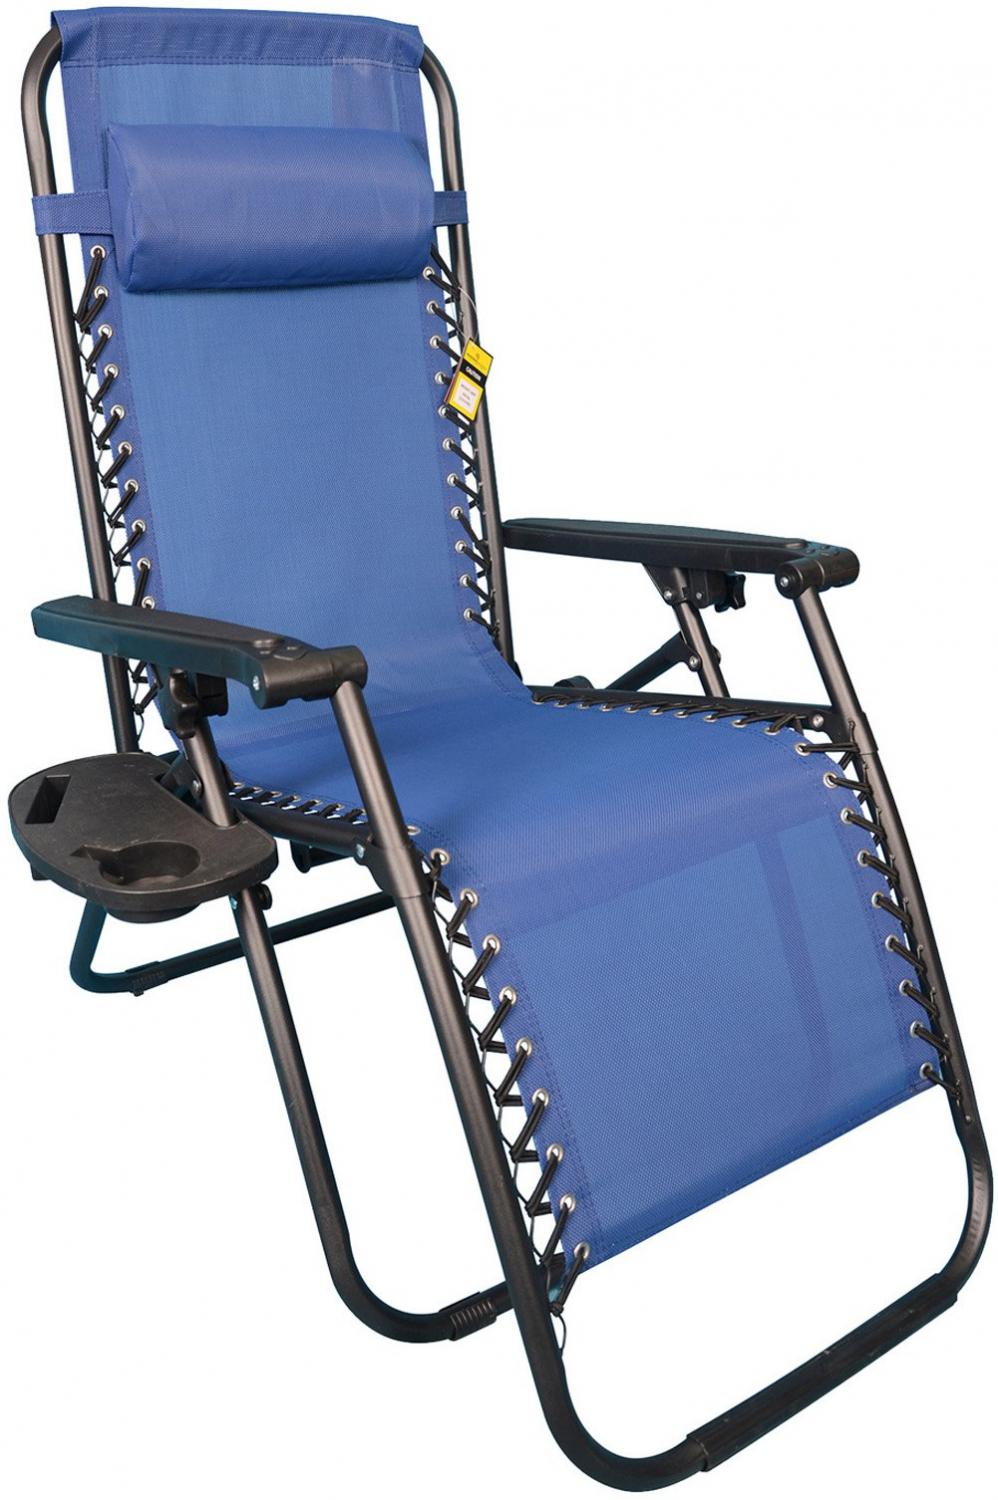 Details About New Anti Gravity Chair Sling Fabric Steel Portable With Removable Cupholder Blue